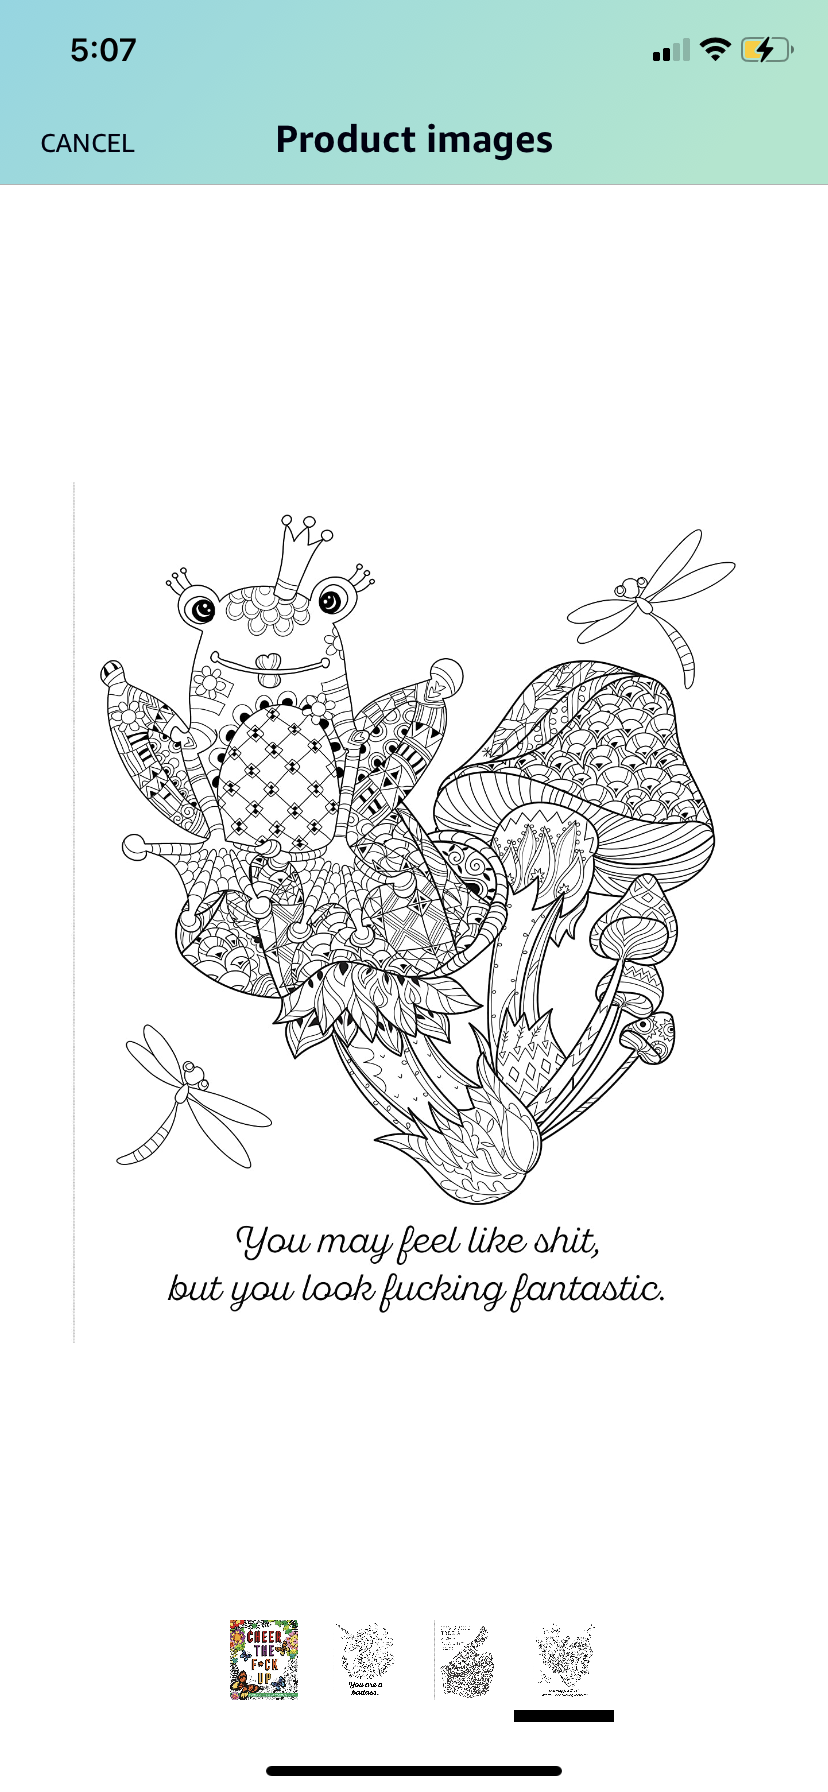 Image of Bluntly motivational coloring book